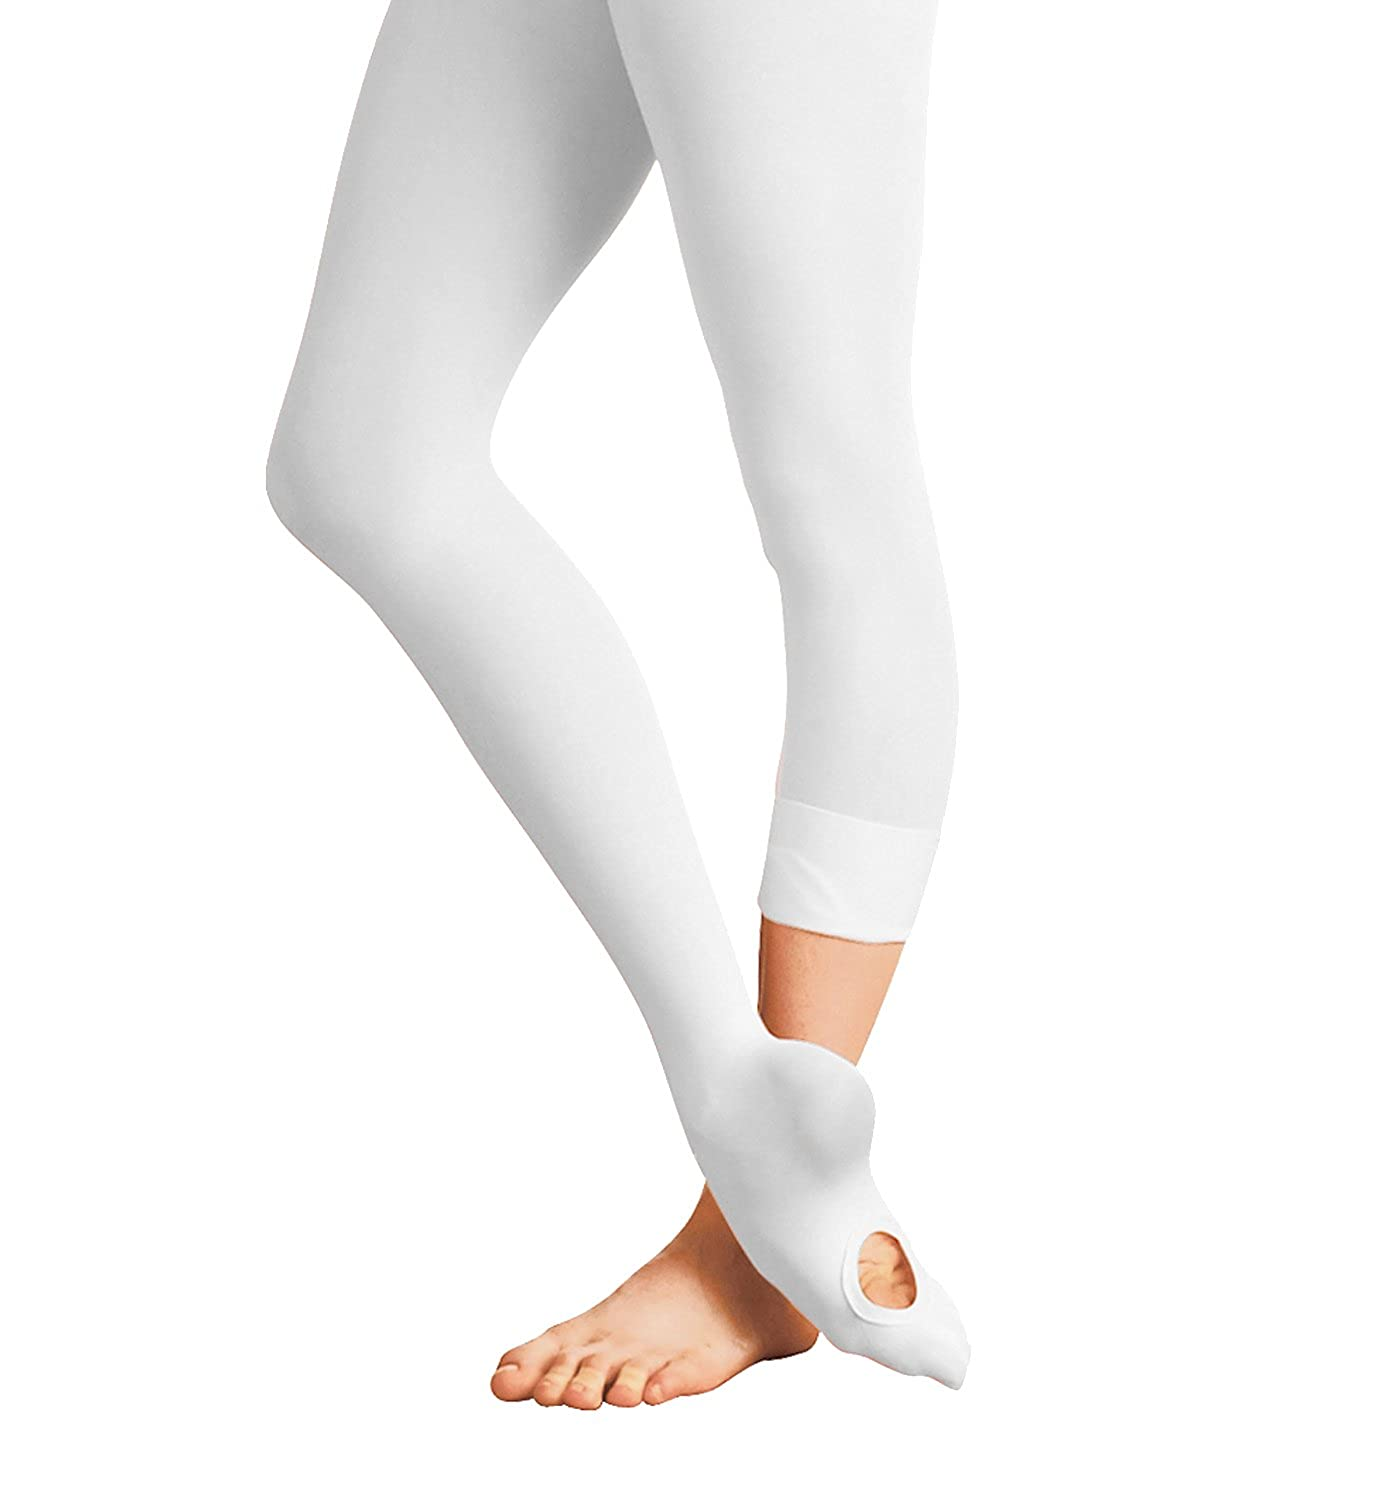 S//M CHILD White Bodywrappers Totalstretch Convertible Tights